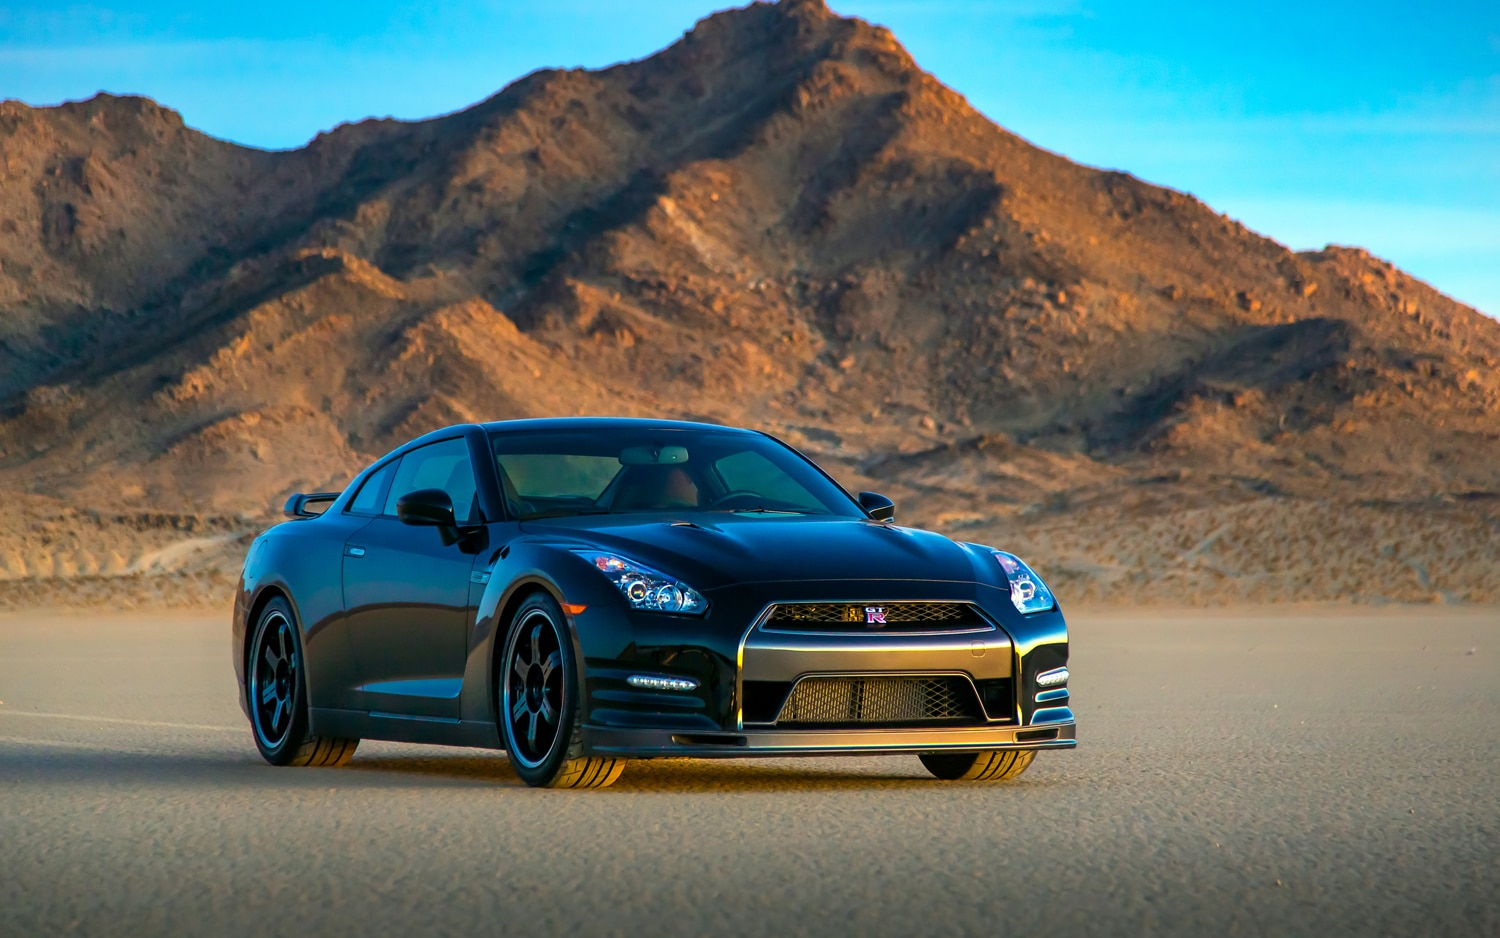 2014 nissan gt r track edition first look automobile. Black Bedroom Furniture Sets. Home Design Ideas